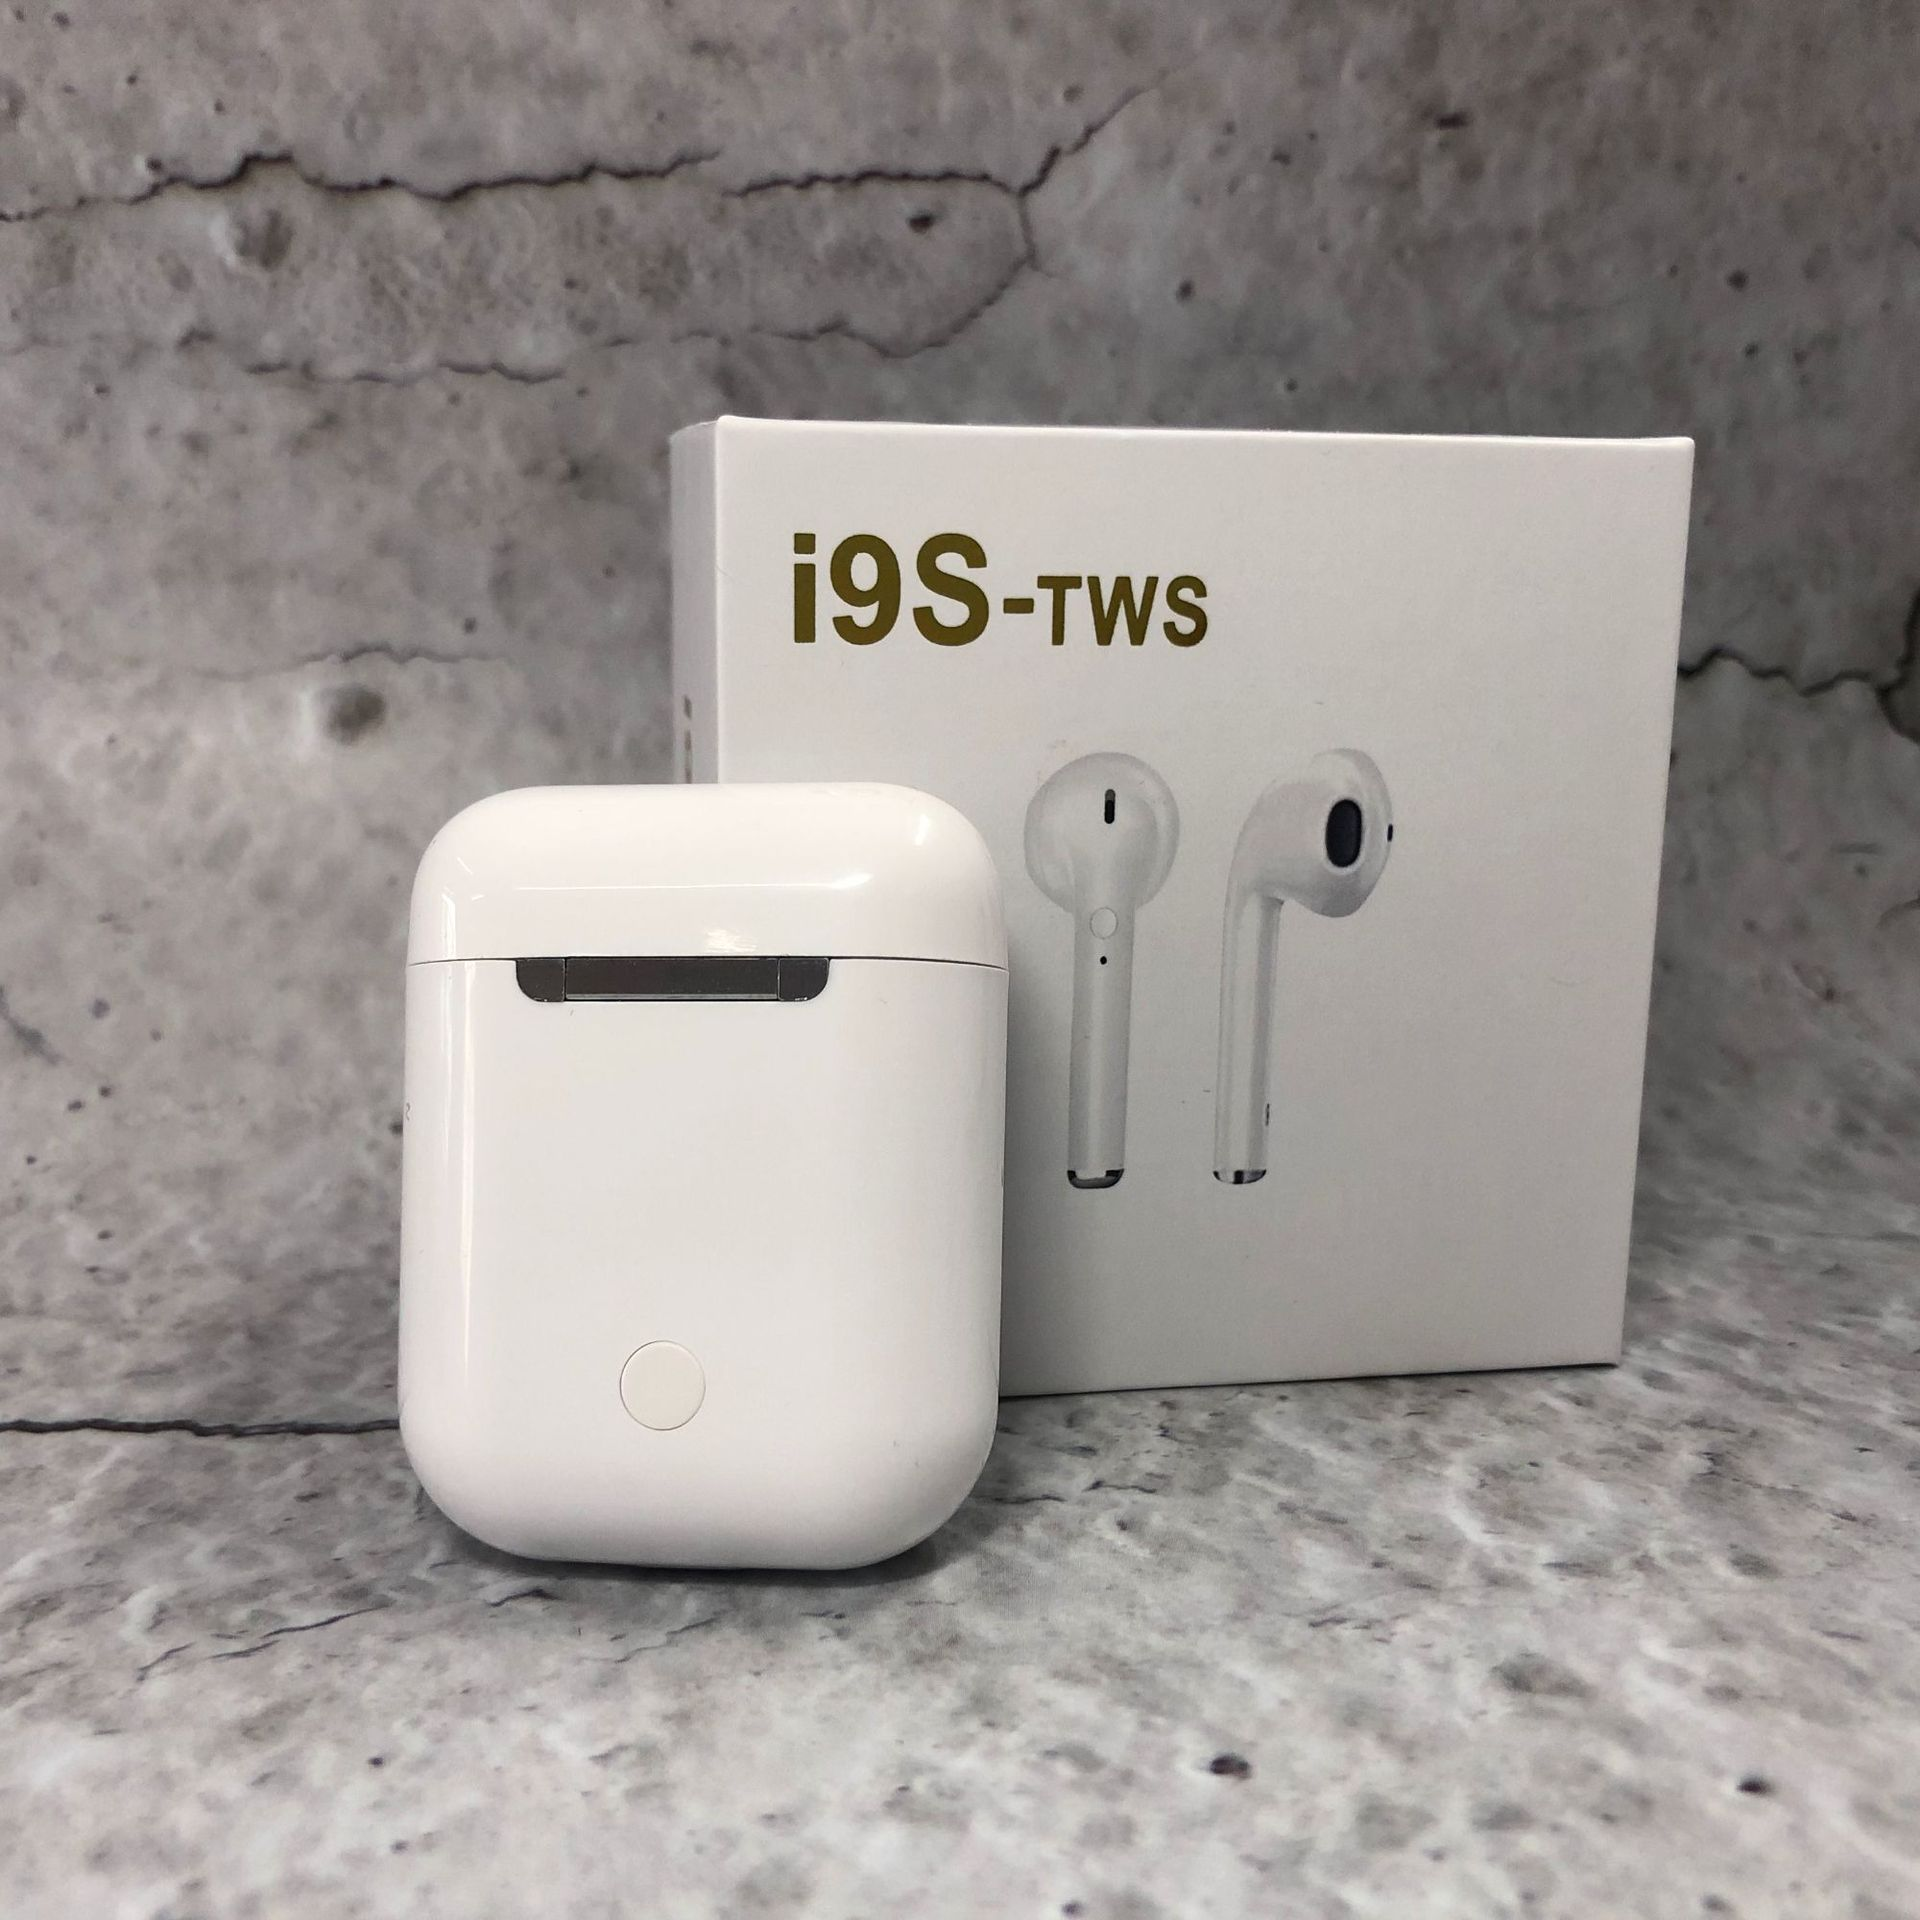 I9s 5.0 TWS Ture Wireless Bluetooth 5.0 Earphone Stereo Auto Pairing Earbuds For Apple, Andorid,IOS